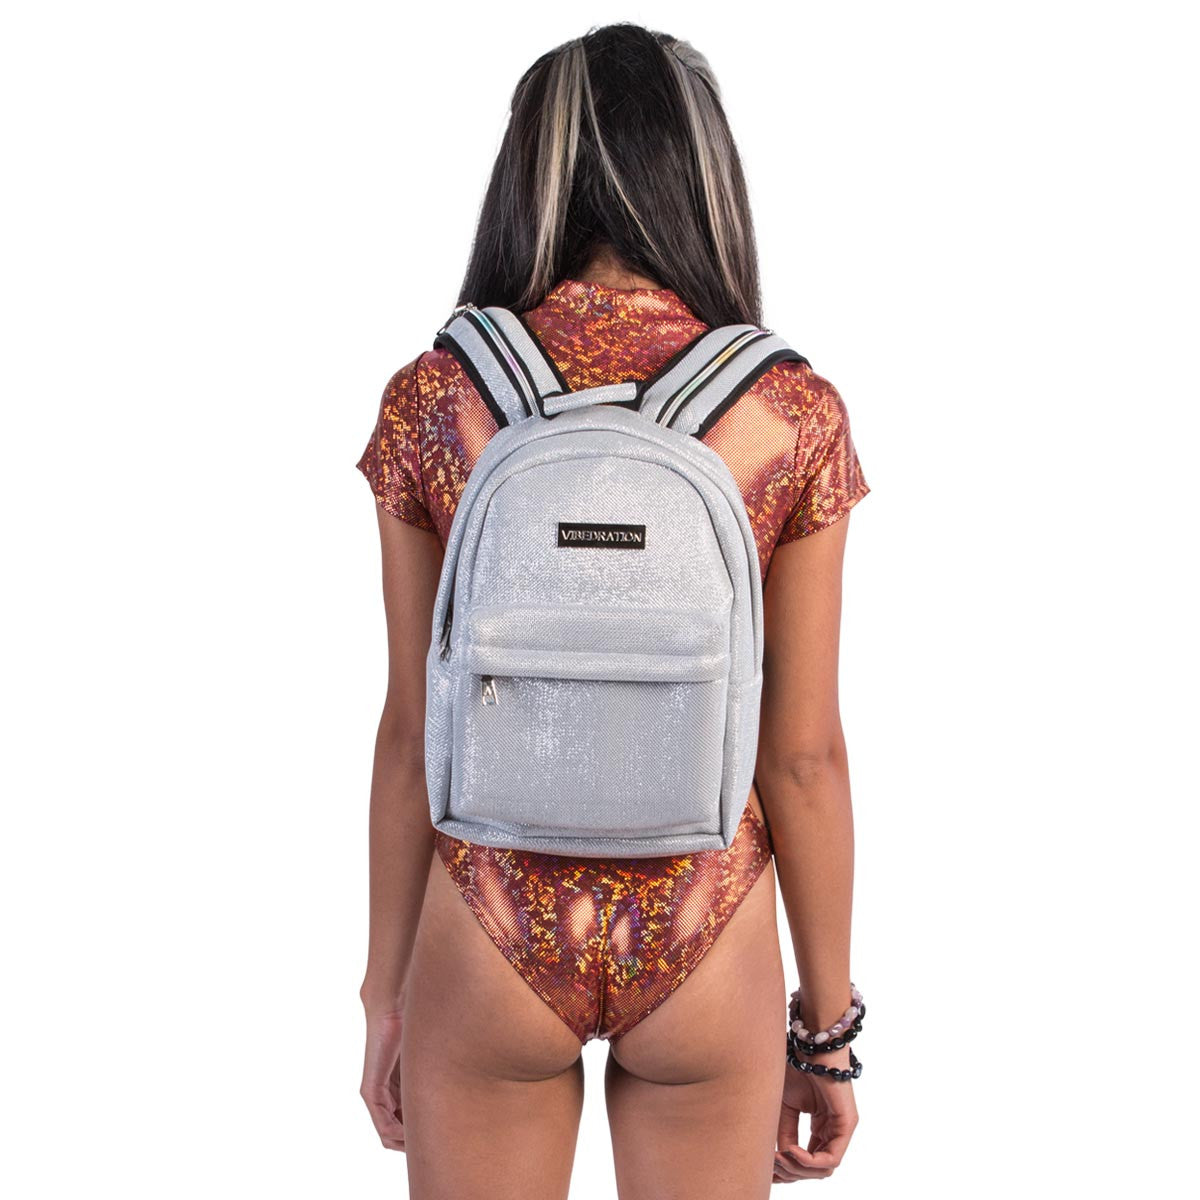 Back view of female wearing titanium silver glitter water backpack.